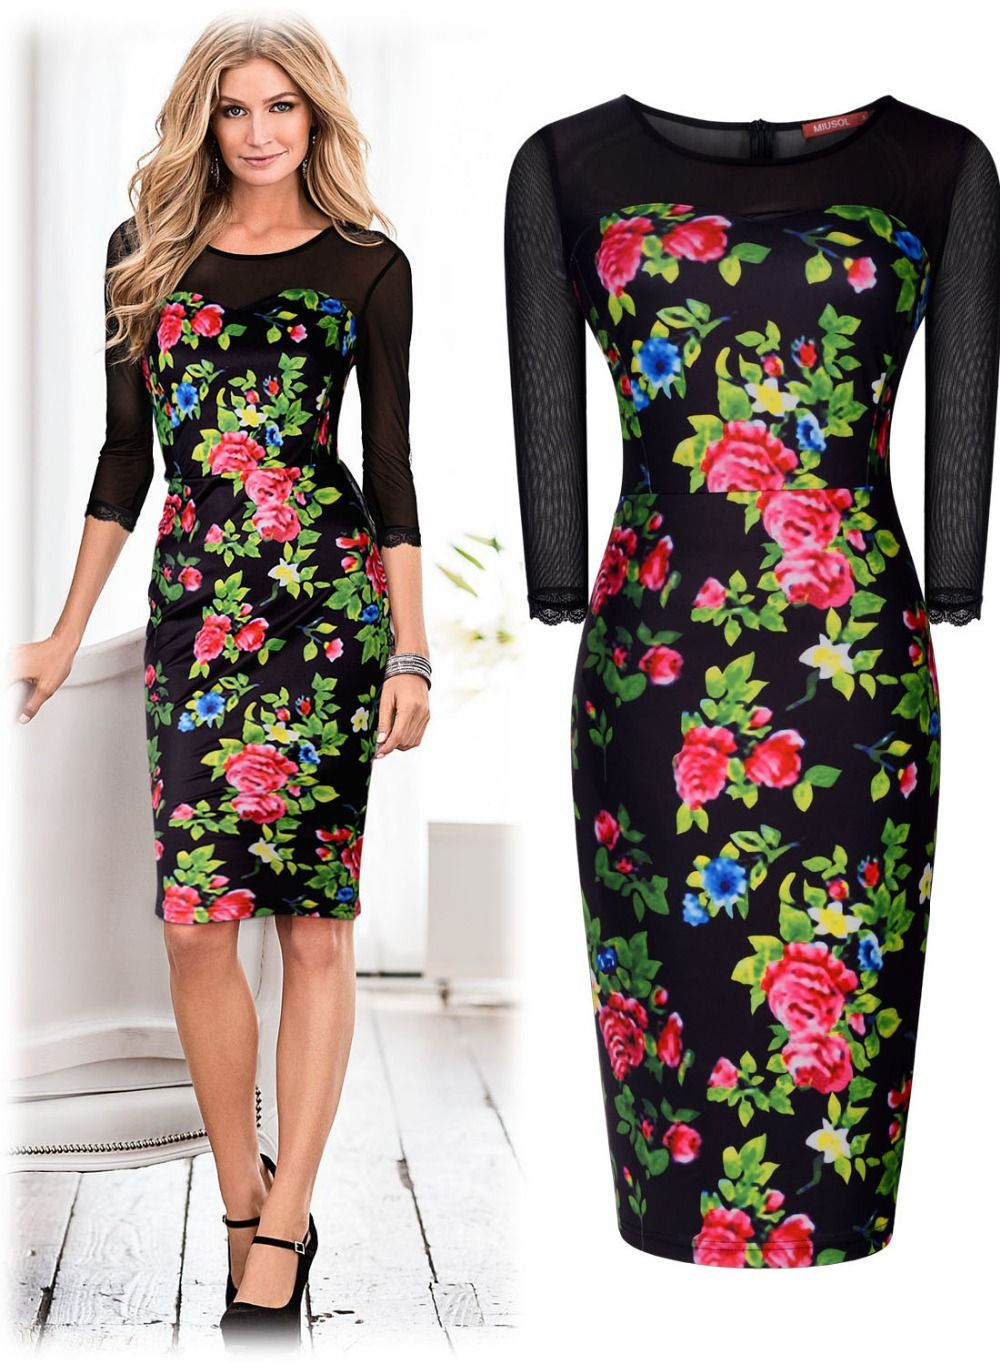 Free shipping Women s Floral Print Bodycon Stretch Prom Party Dresses  Hawaiian Holiday Ladies 3162(China (Mainland)) e639f6bca540